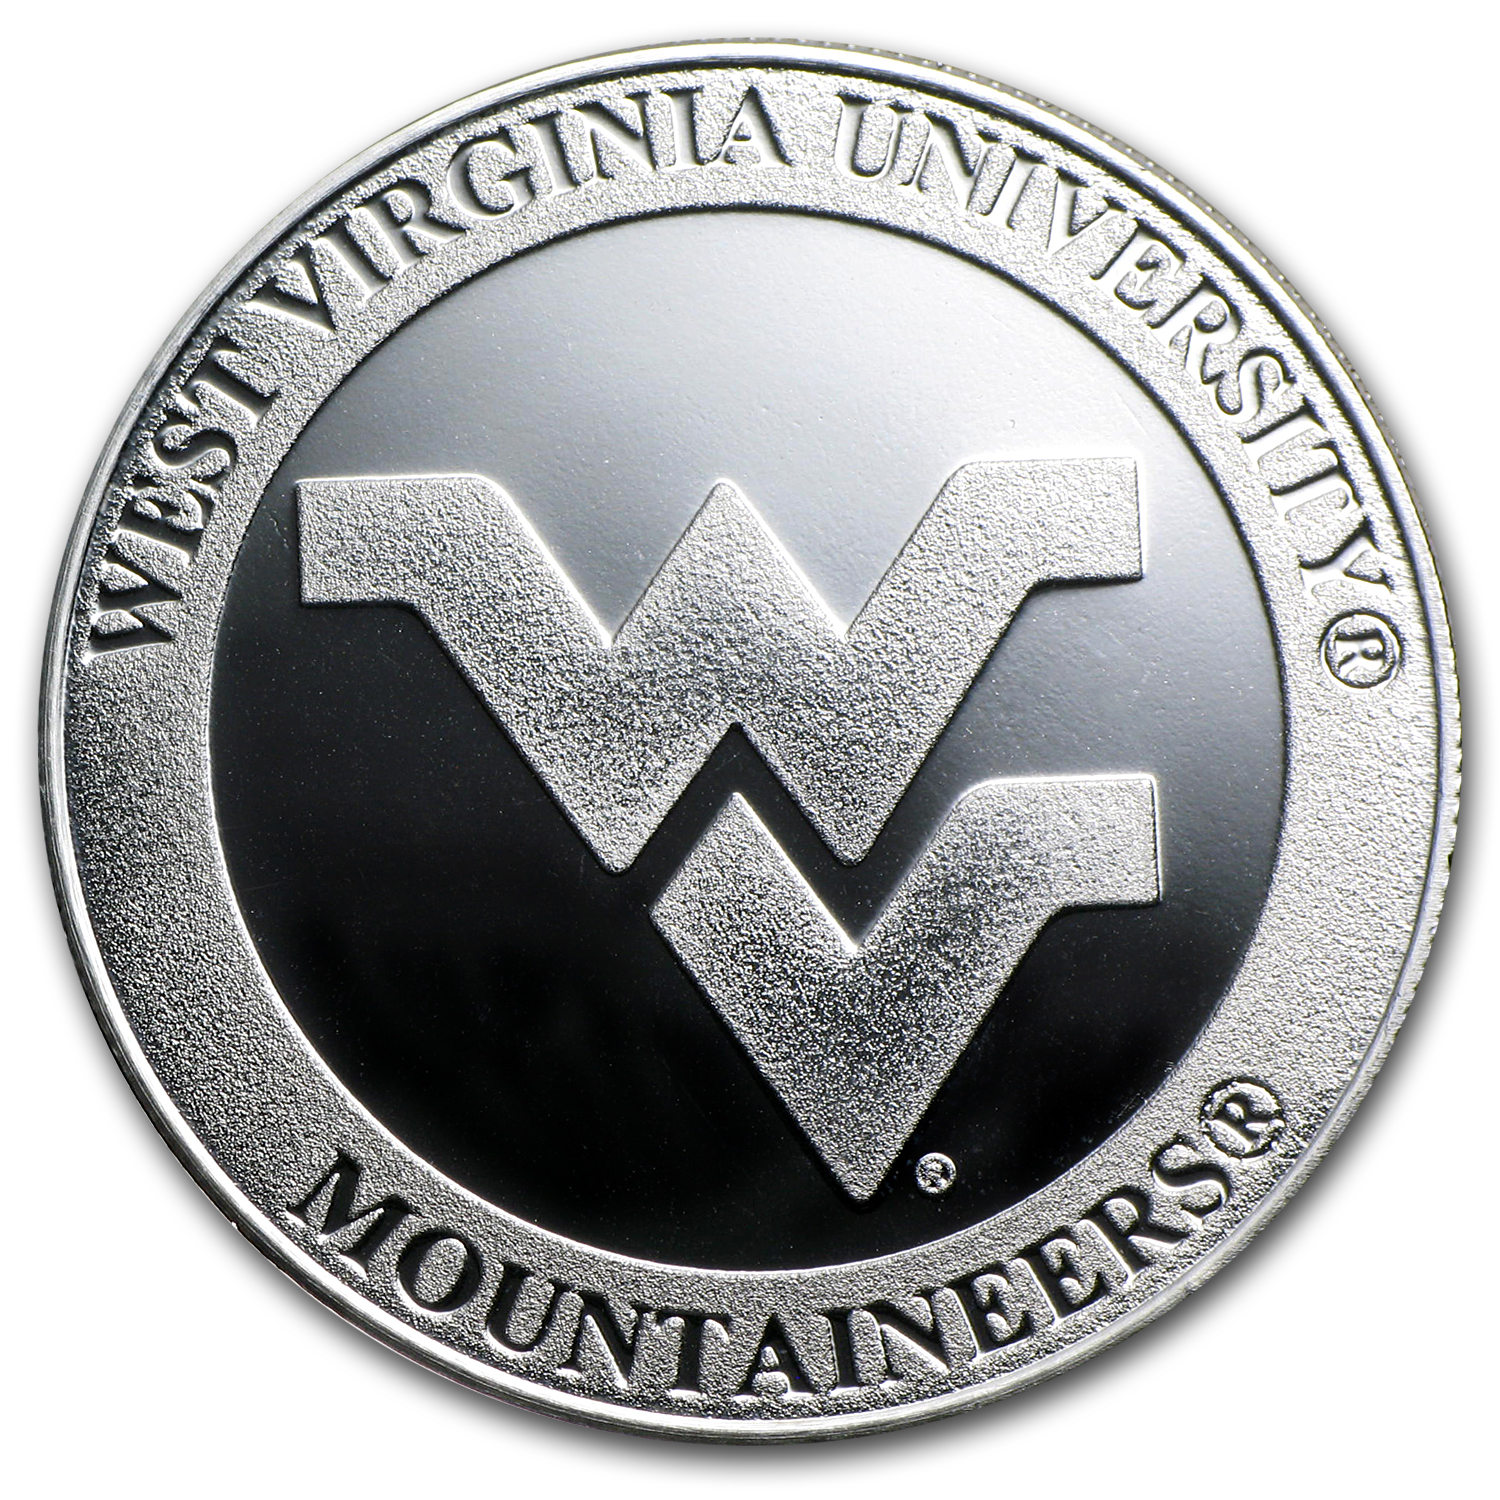 1 oz Silver Round - West Virginia University